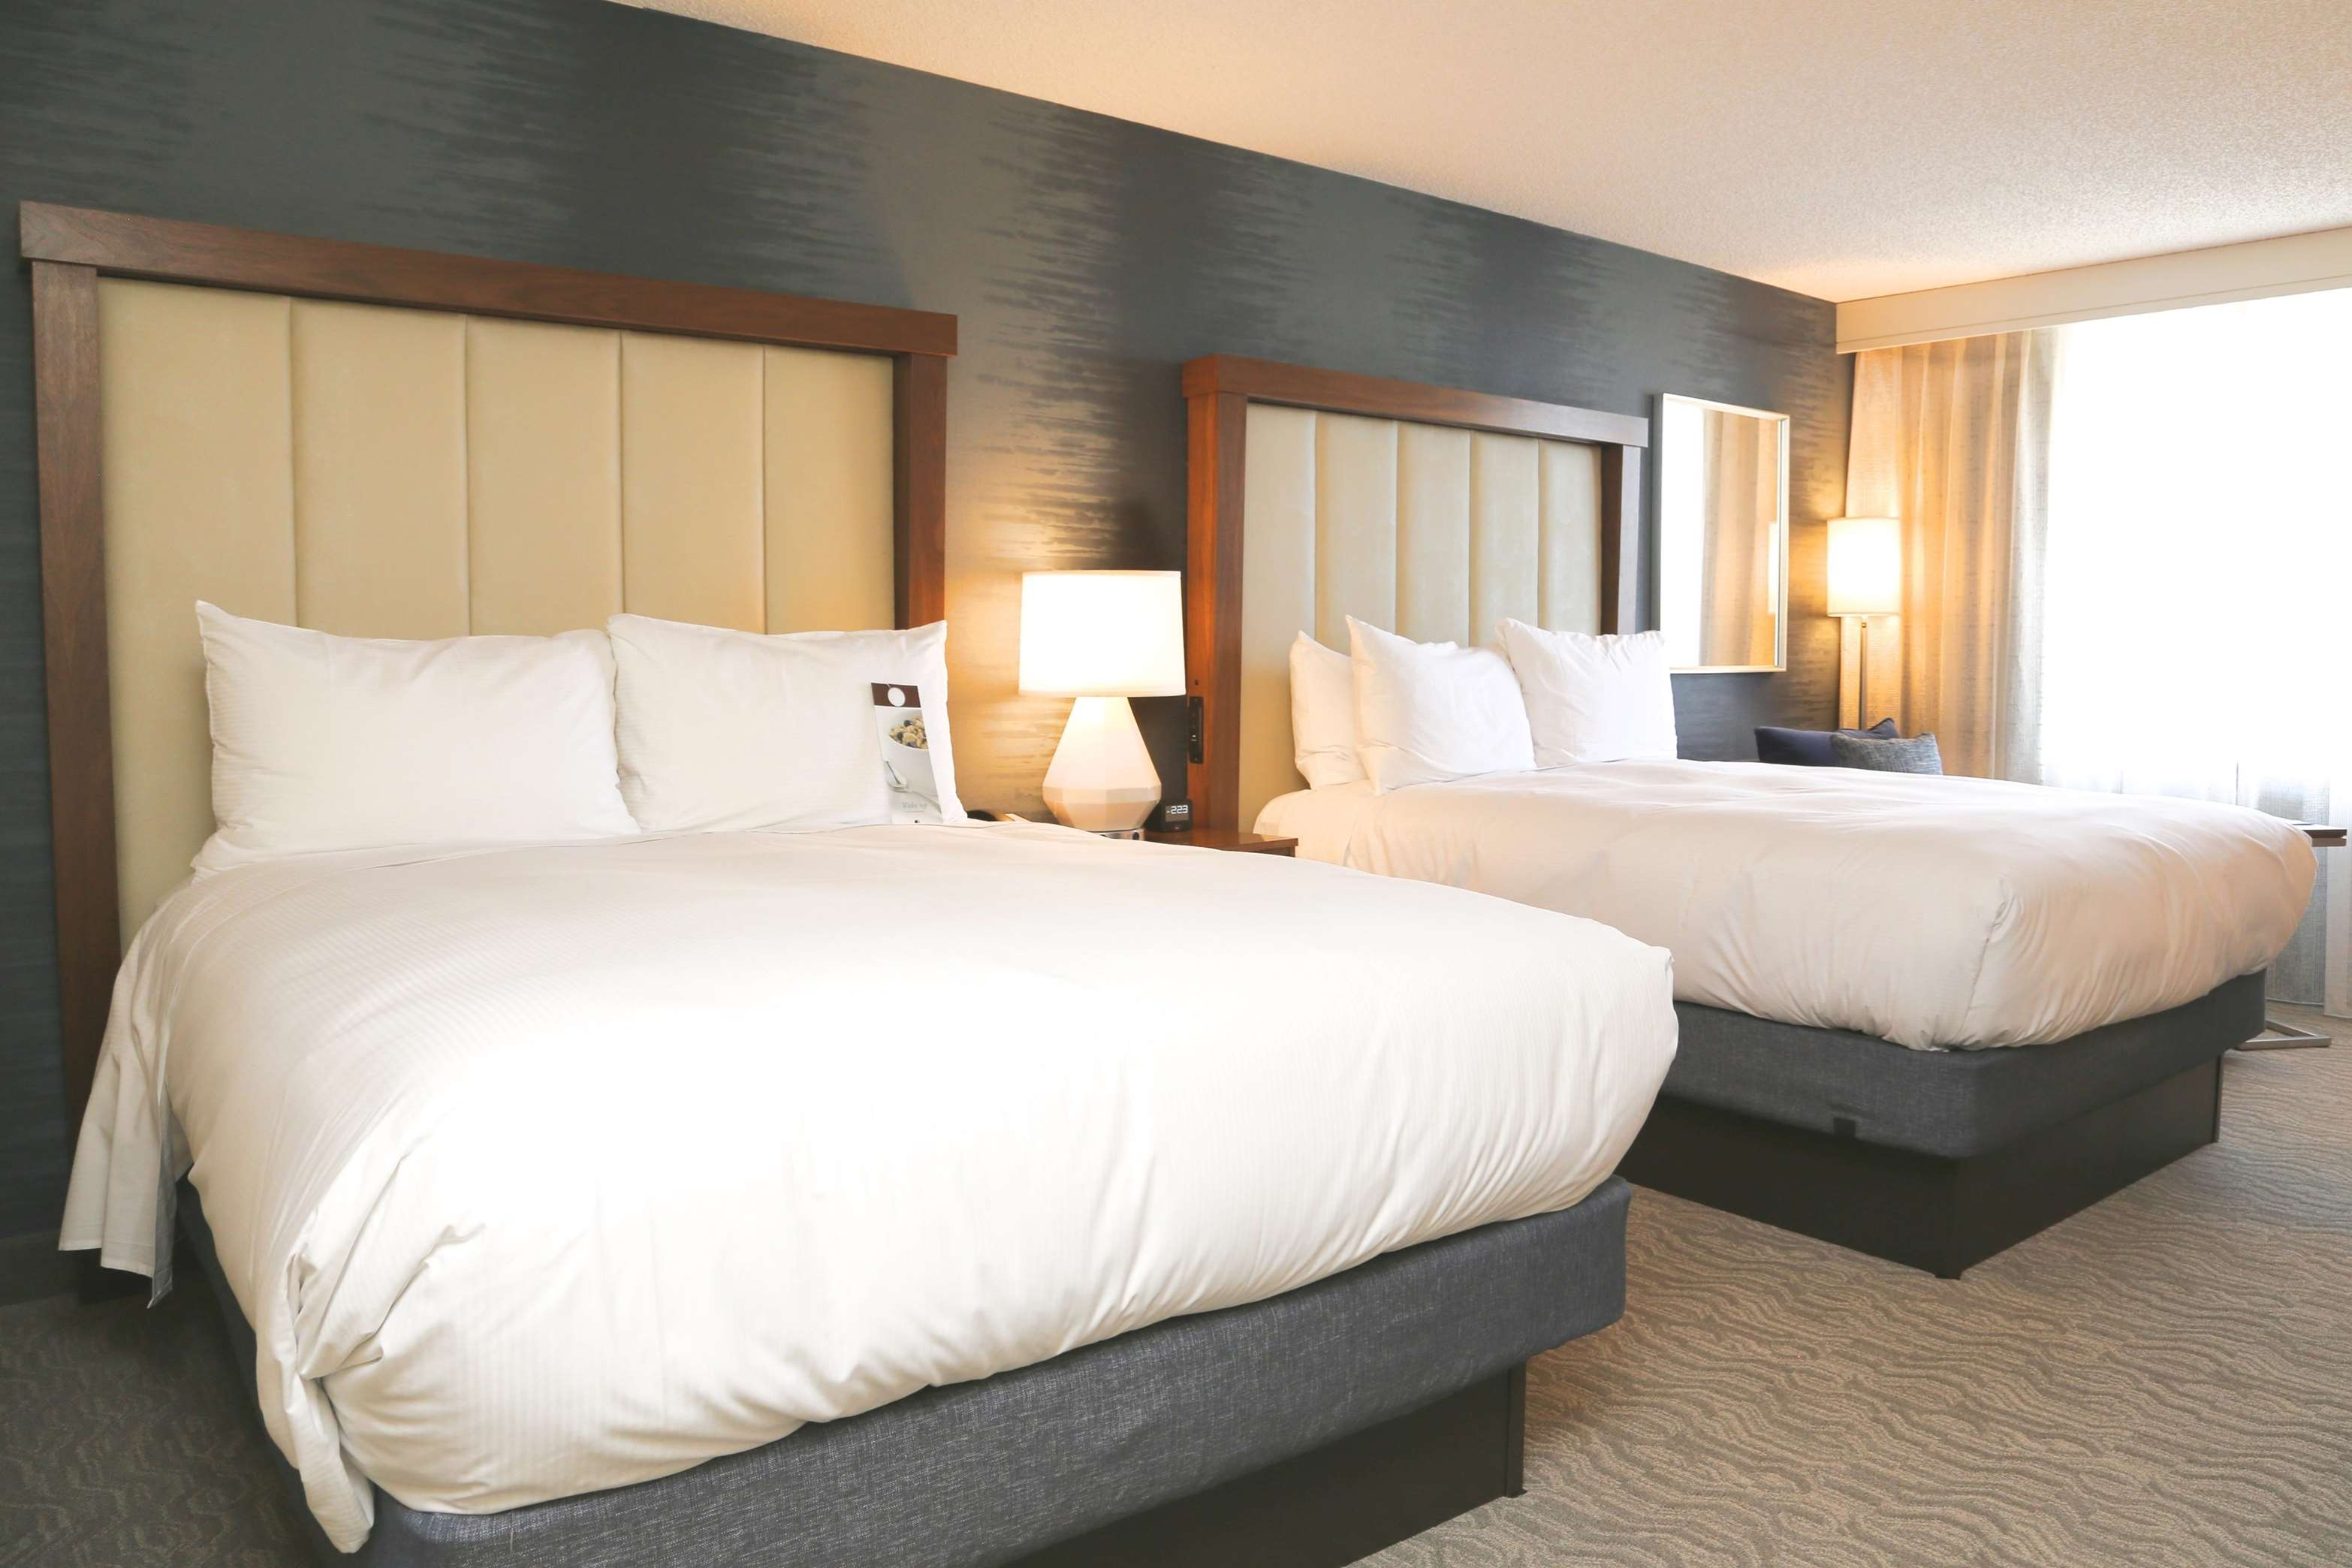 DoubleTree by Hilton Boston - Andover image 23